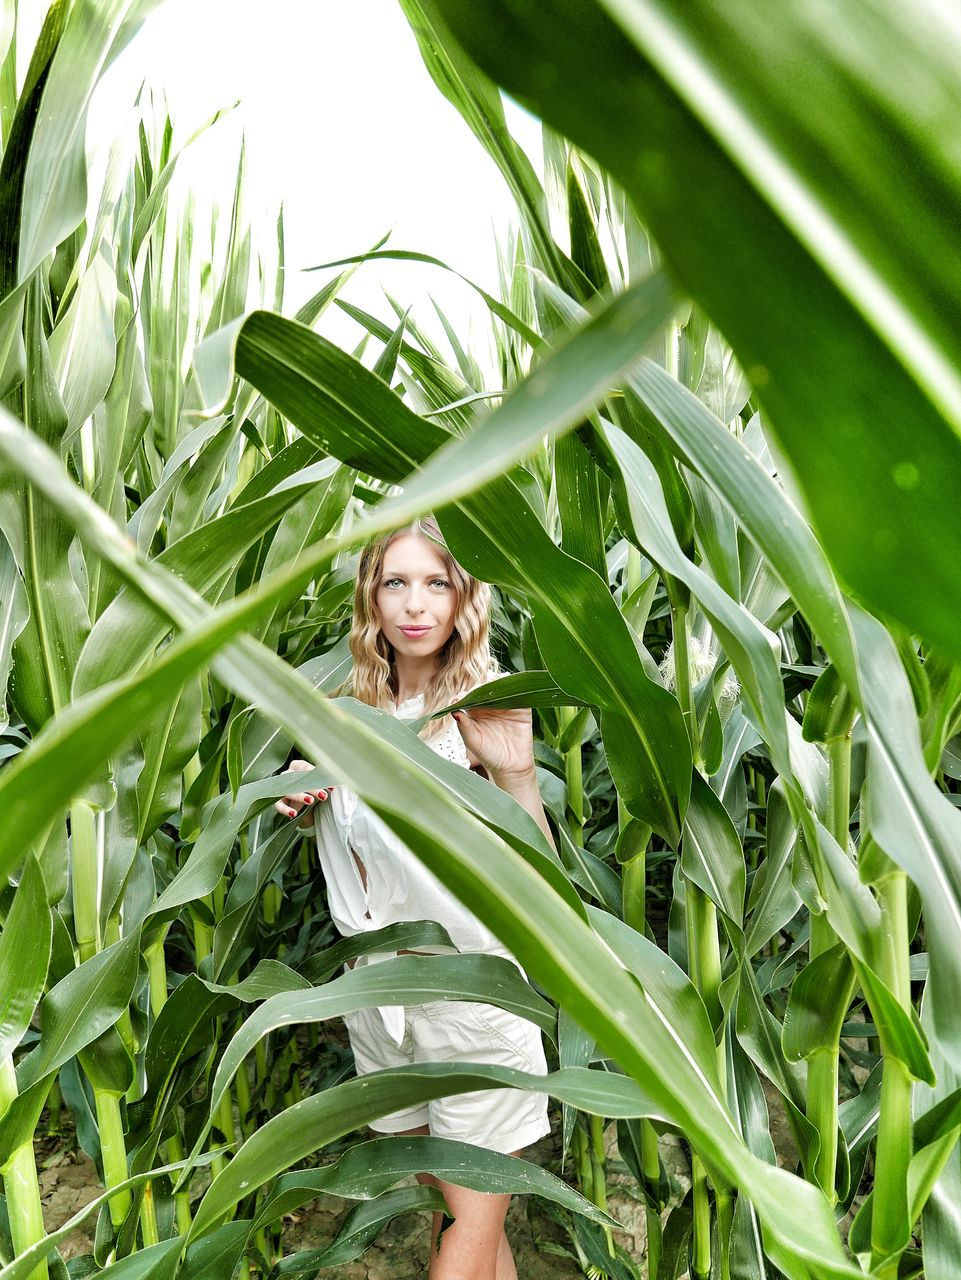 Portrait of young woman standing amidst corns on field